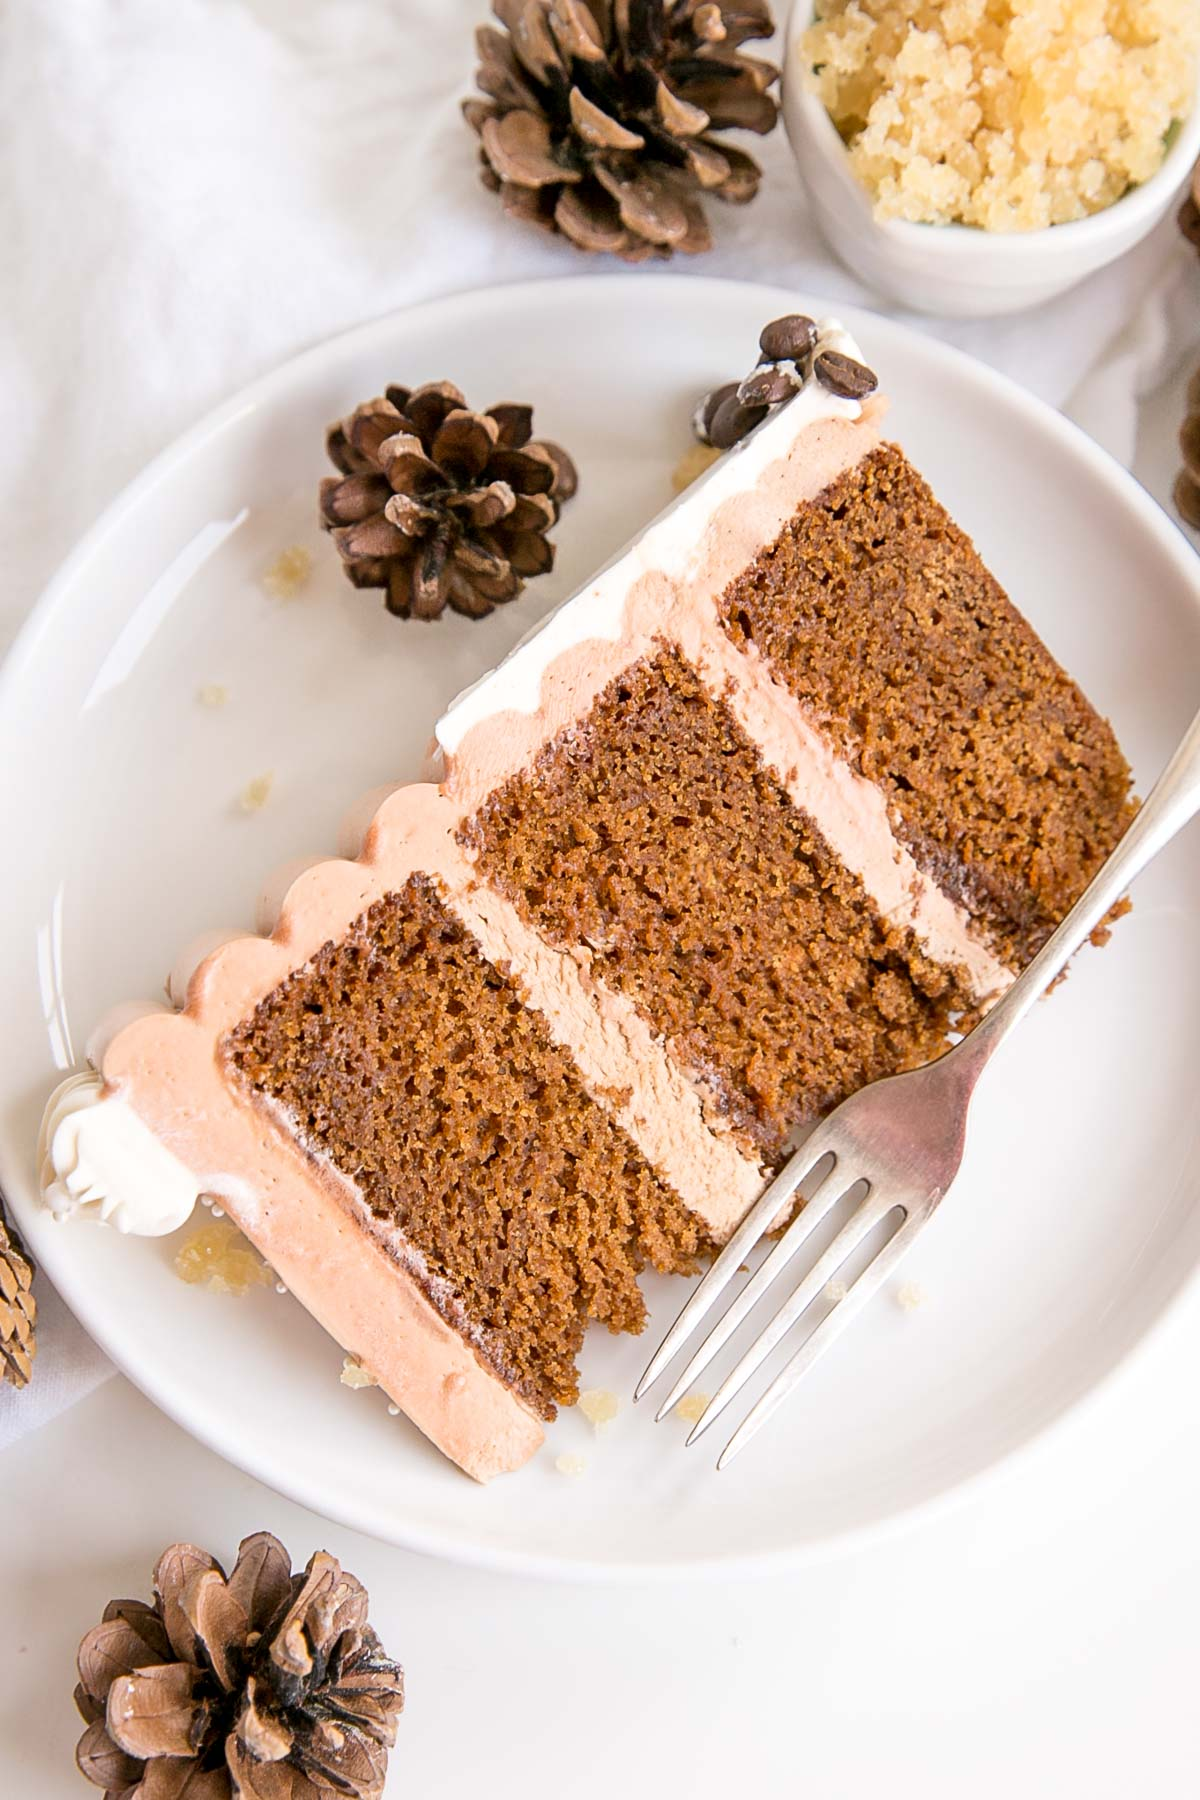 Slice of gingerbread latte cake on a plate.